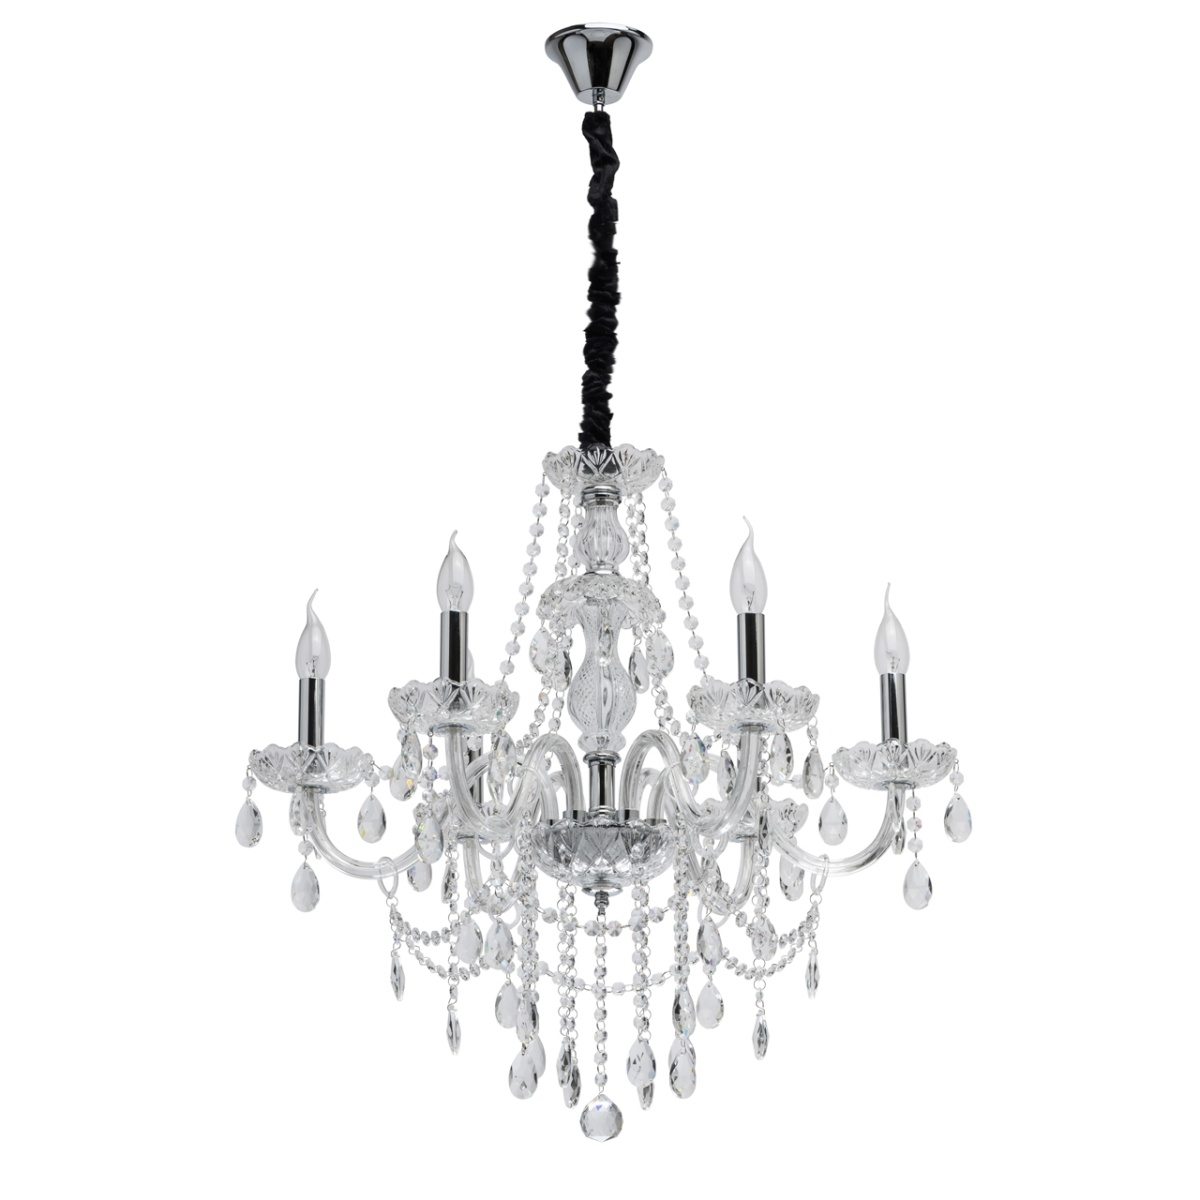 Candelabru Light Crystal Adele Imagine